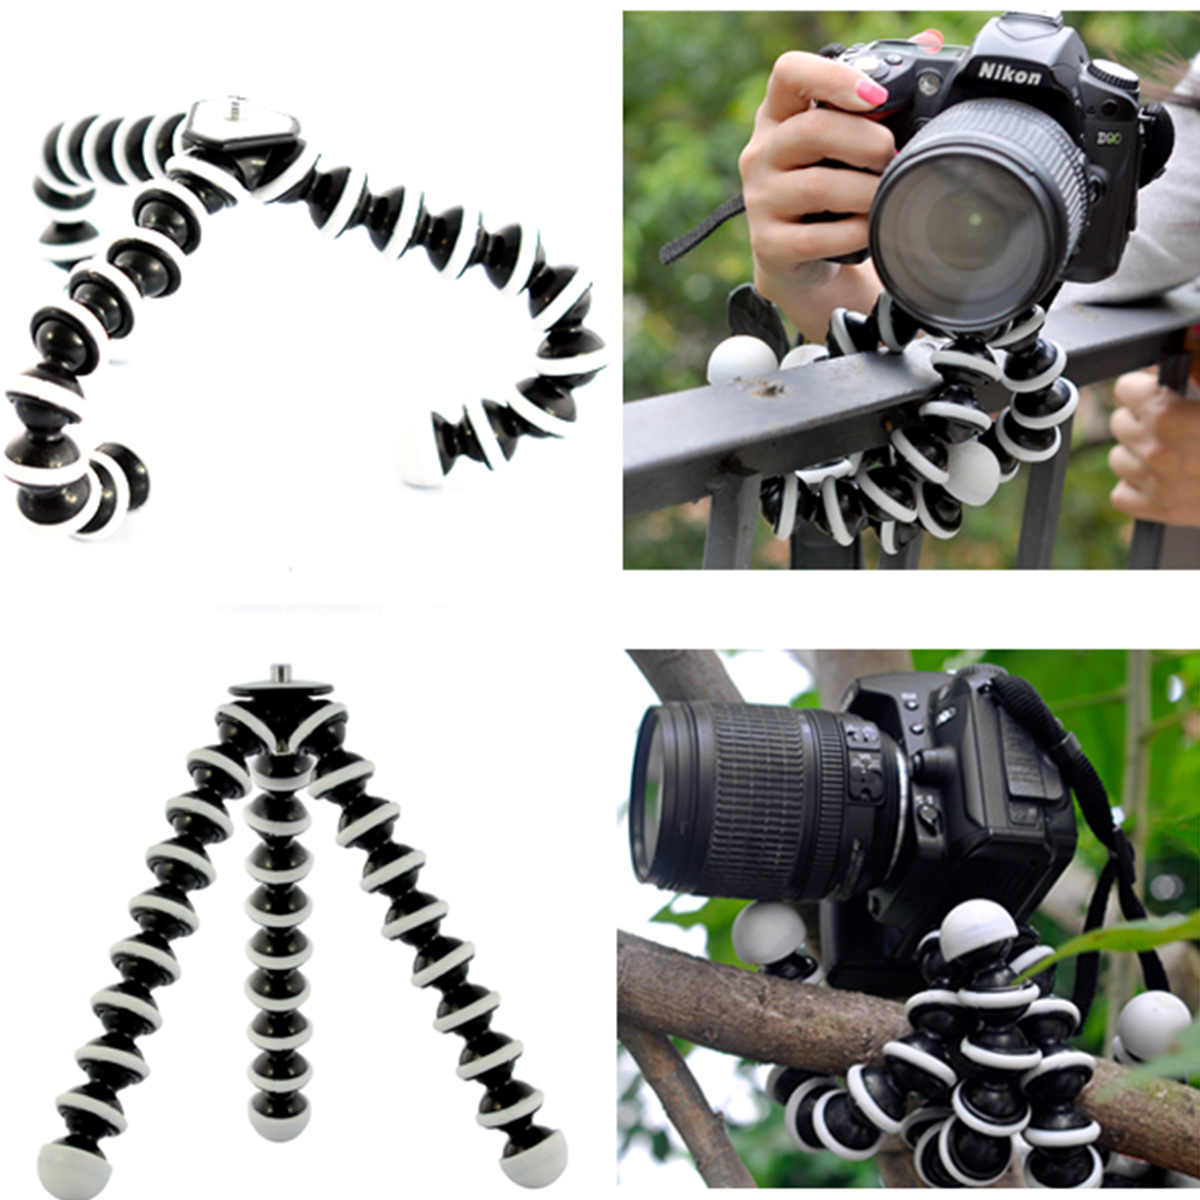 Large Octopus Flexible Tripod Stand Gorillapod for phone telefon Mobile Phone smartphone dslr and camera Table Desk mini tripod yixiang mini flexible octopus tripod for iphone samsung xiaomi huawei mobile phone smartphone tripod camera accessory